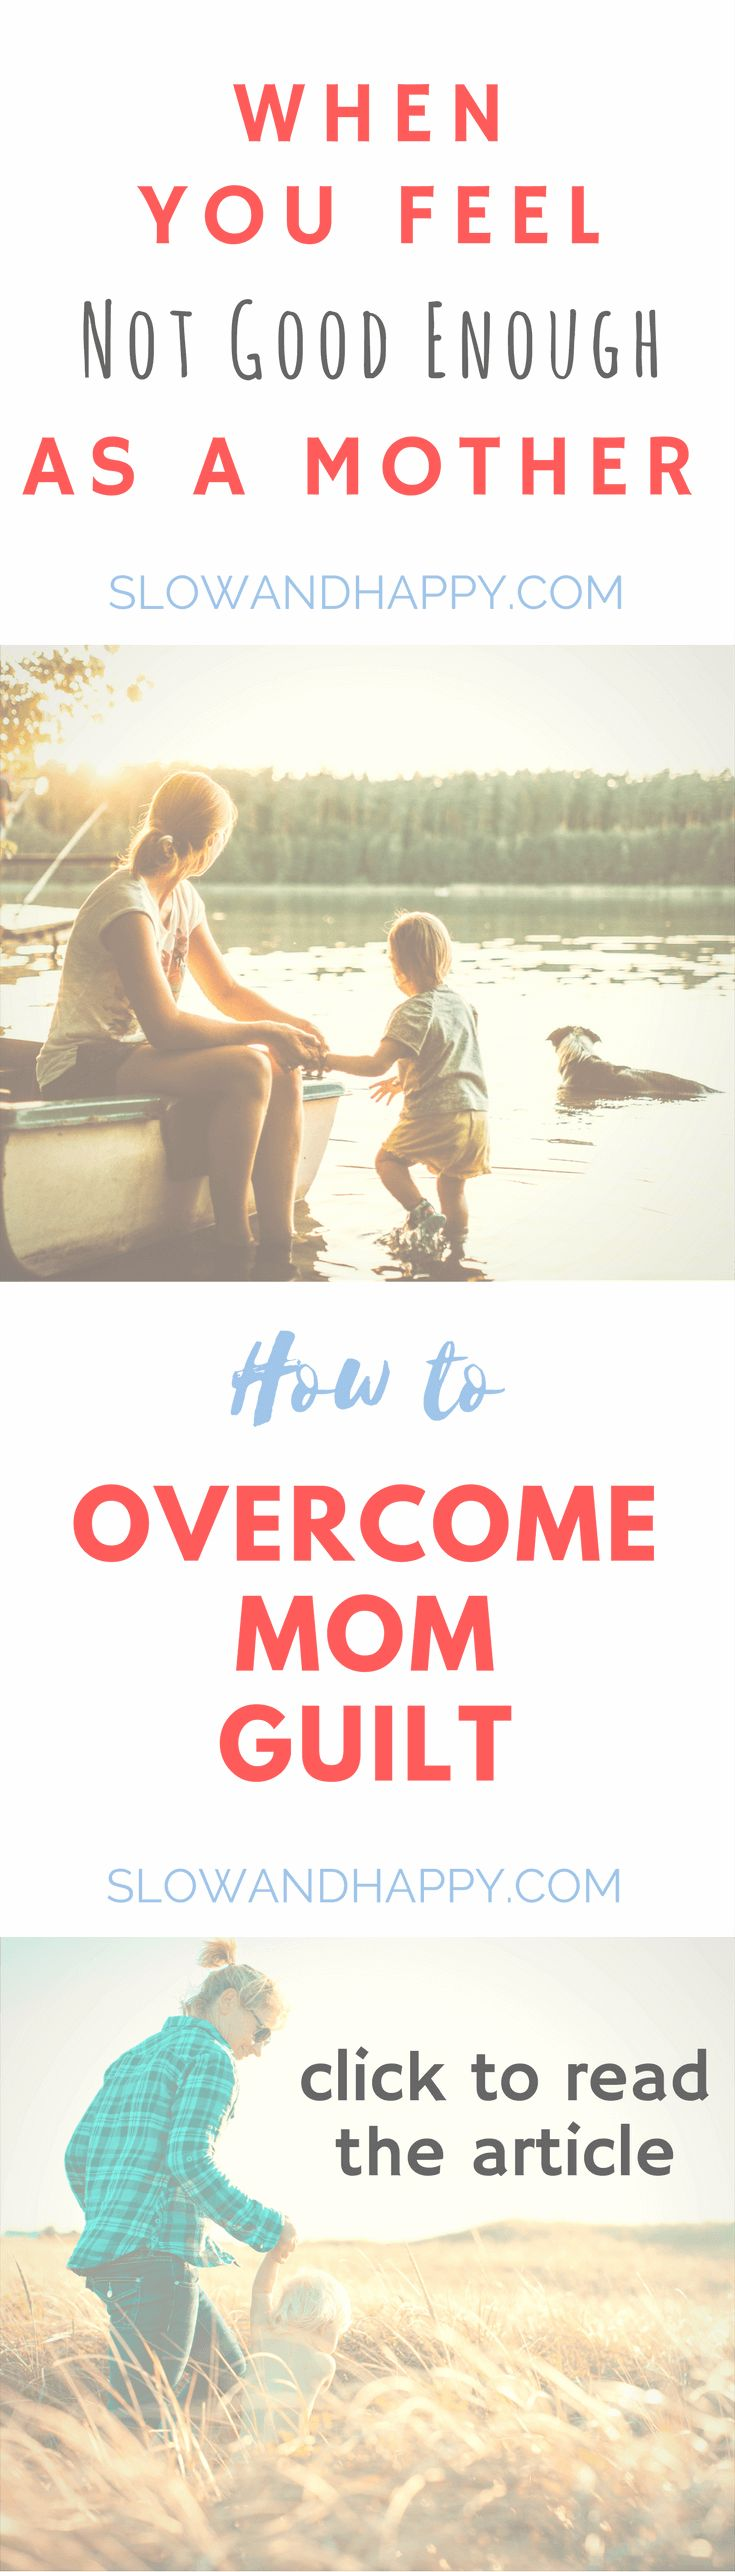 When you feel not good enough as a mother. Ways to overcome mom guilt. Article by a minimalist, slow living mom of two. Don't get depressed if you cannot fulfill other people's expectations about your role as a mother, woman and home manager. Implement my tips and regain the happiness of motherhood. #parenting #motherhood #momguilt #momslife #momblues Click to read the article!